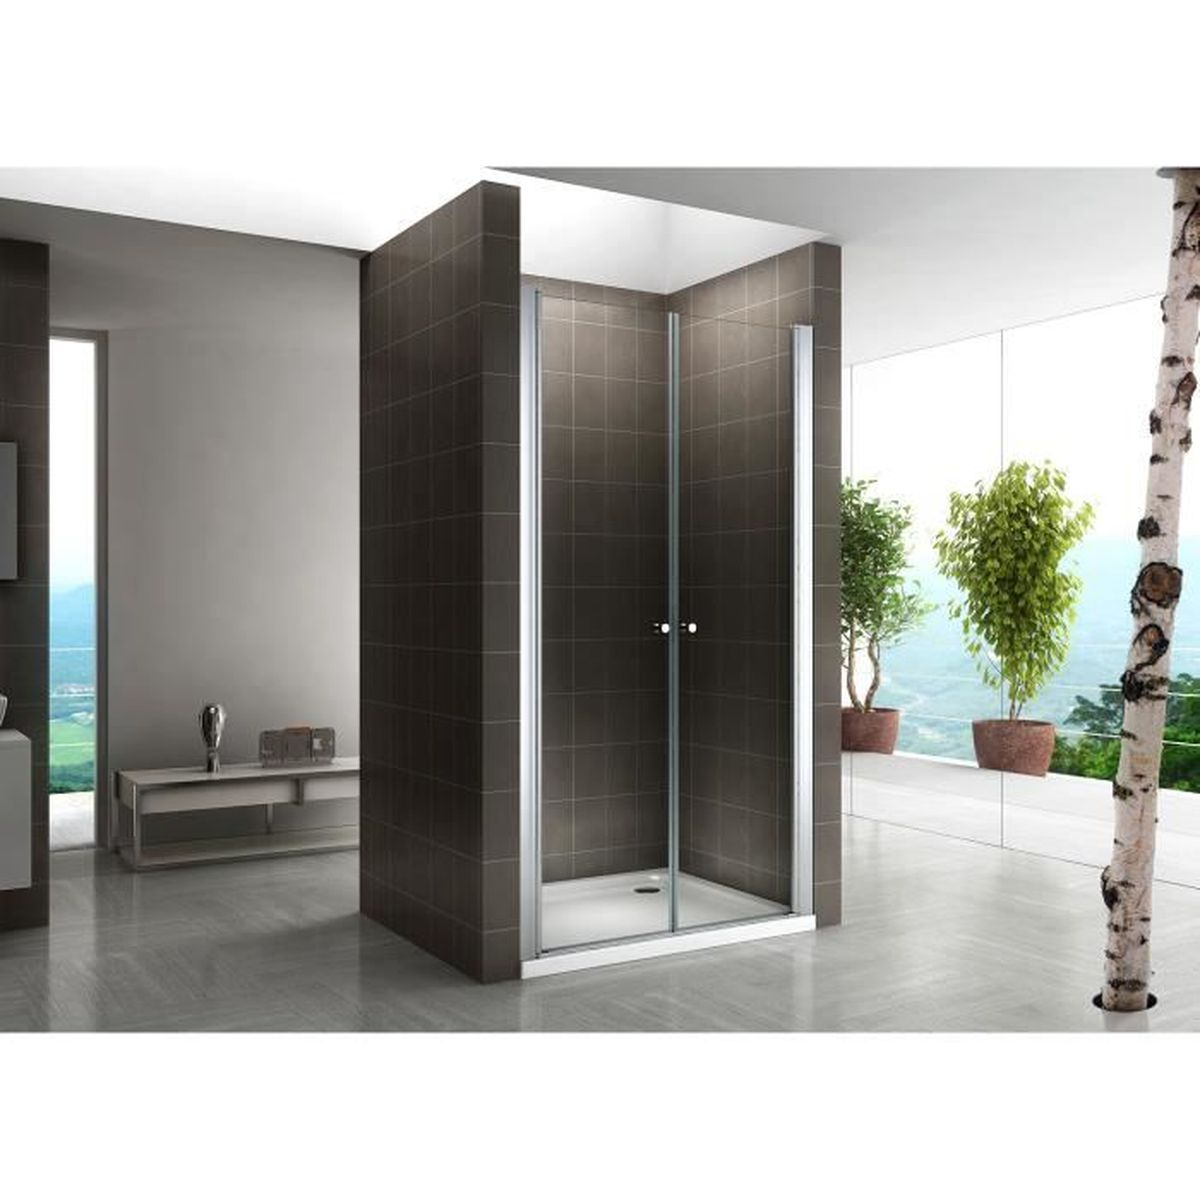 porte douche 72 achat vente pas cher. Black Bedroom Furniture Sets. Home Design Ideas